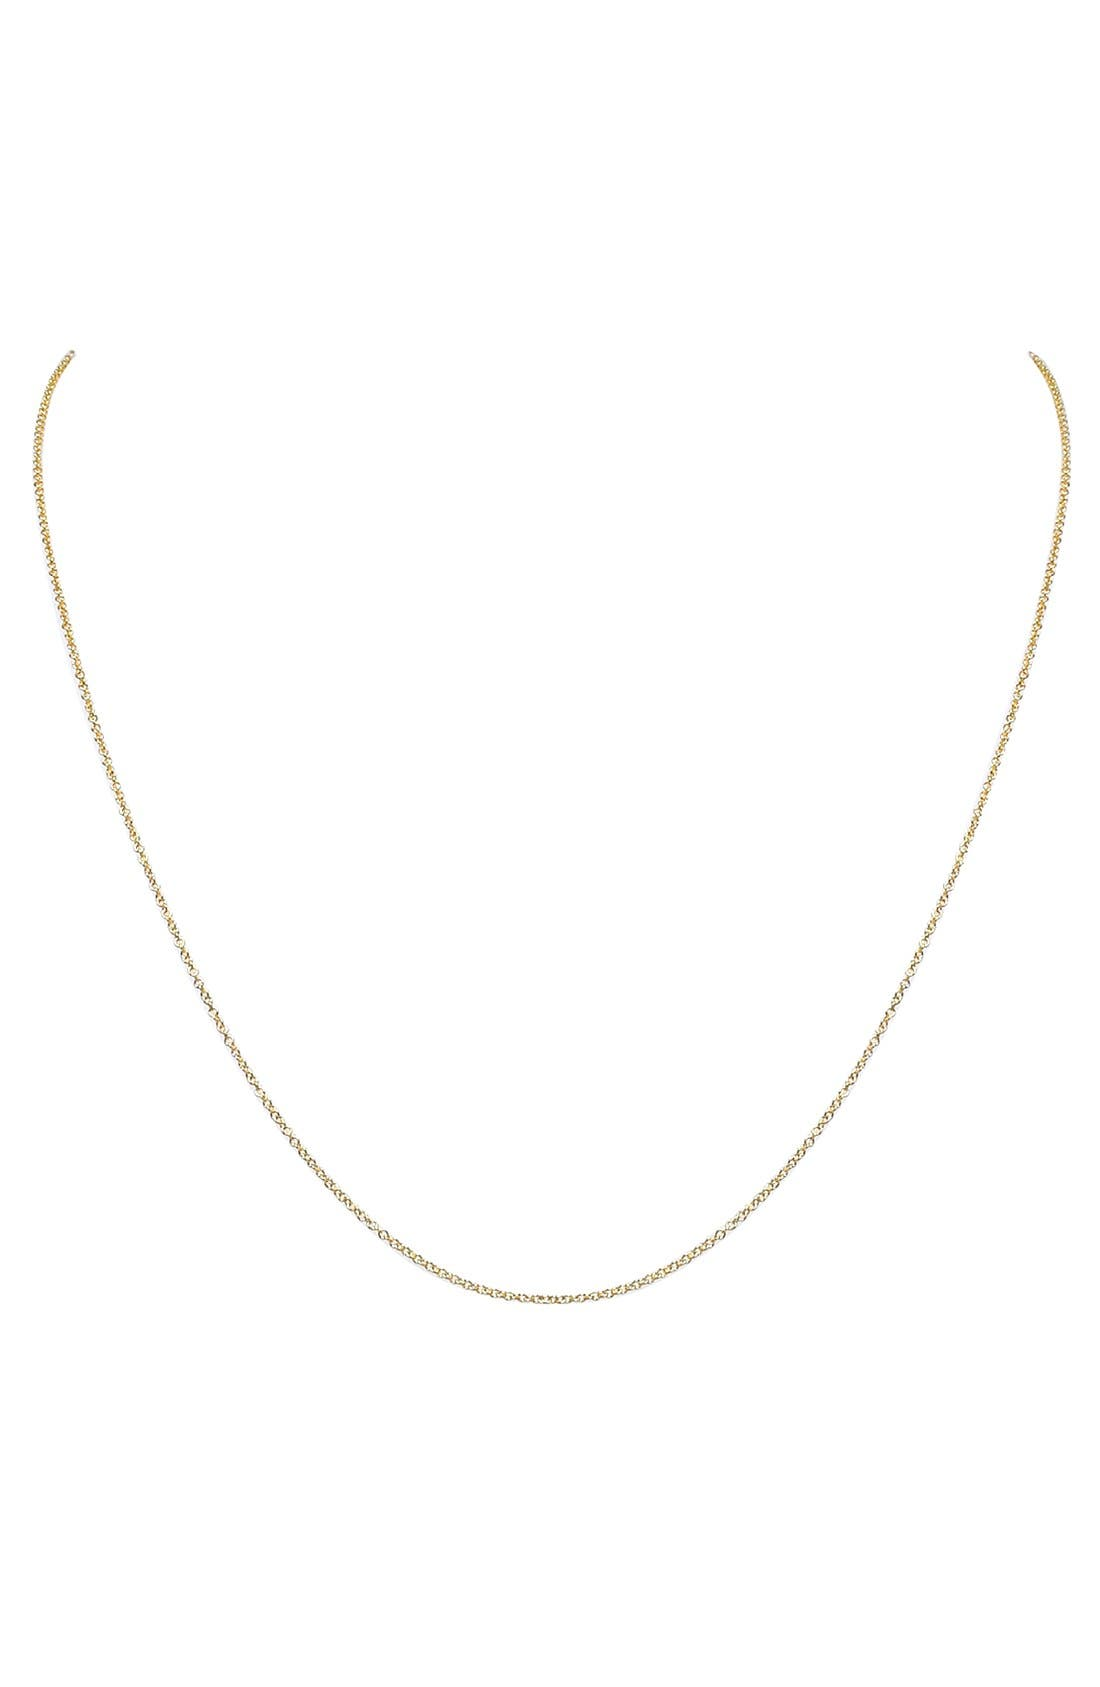 Chain Necklace,                         Main,                         color, YELLOW GOLD